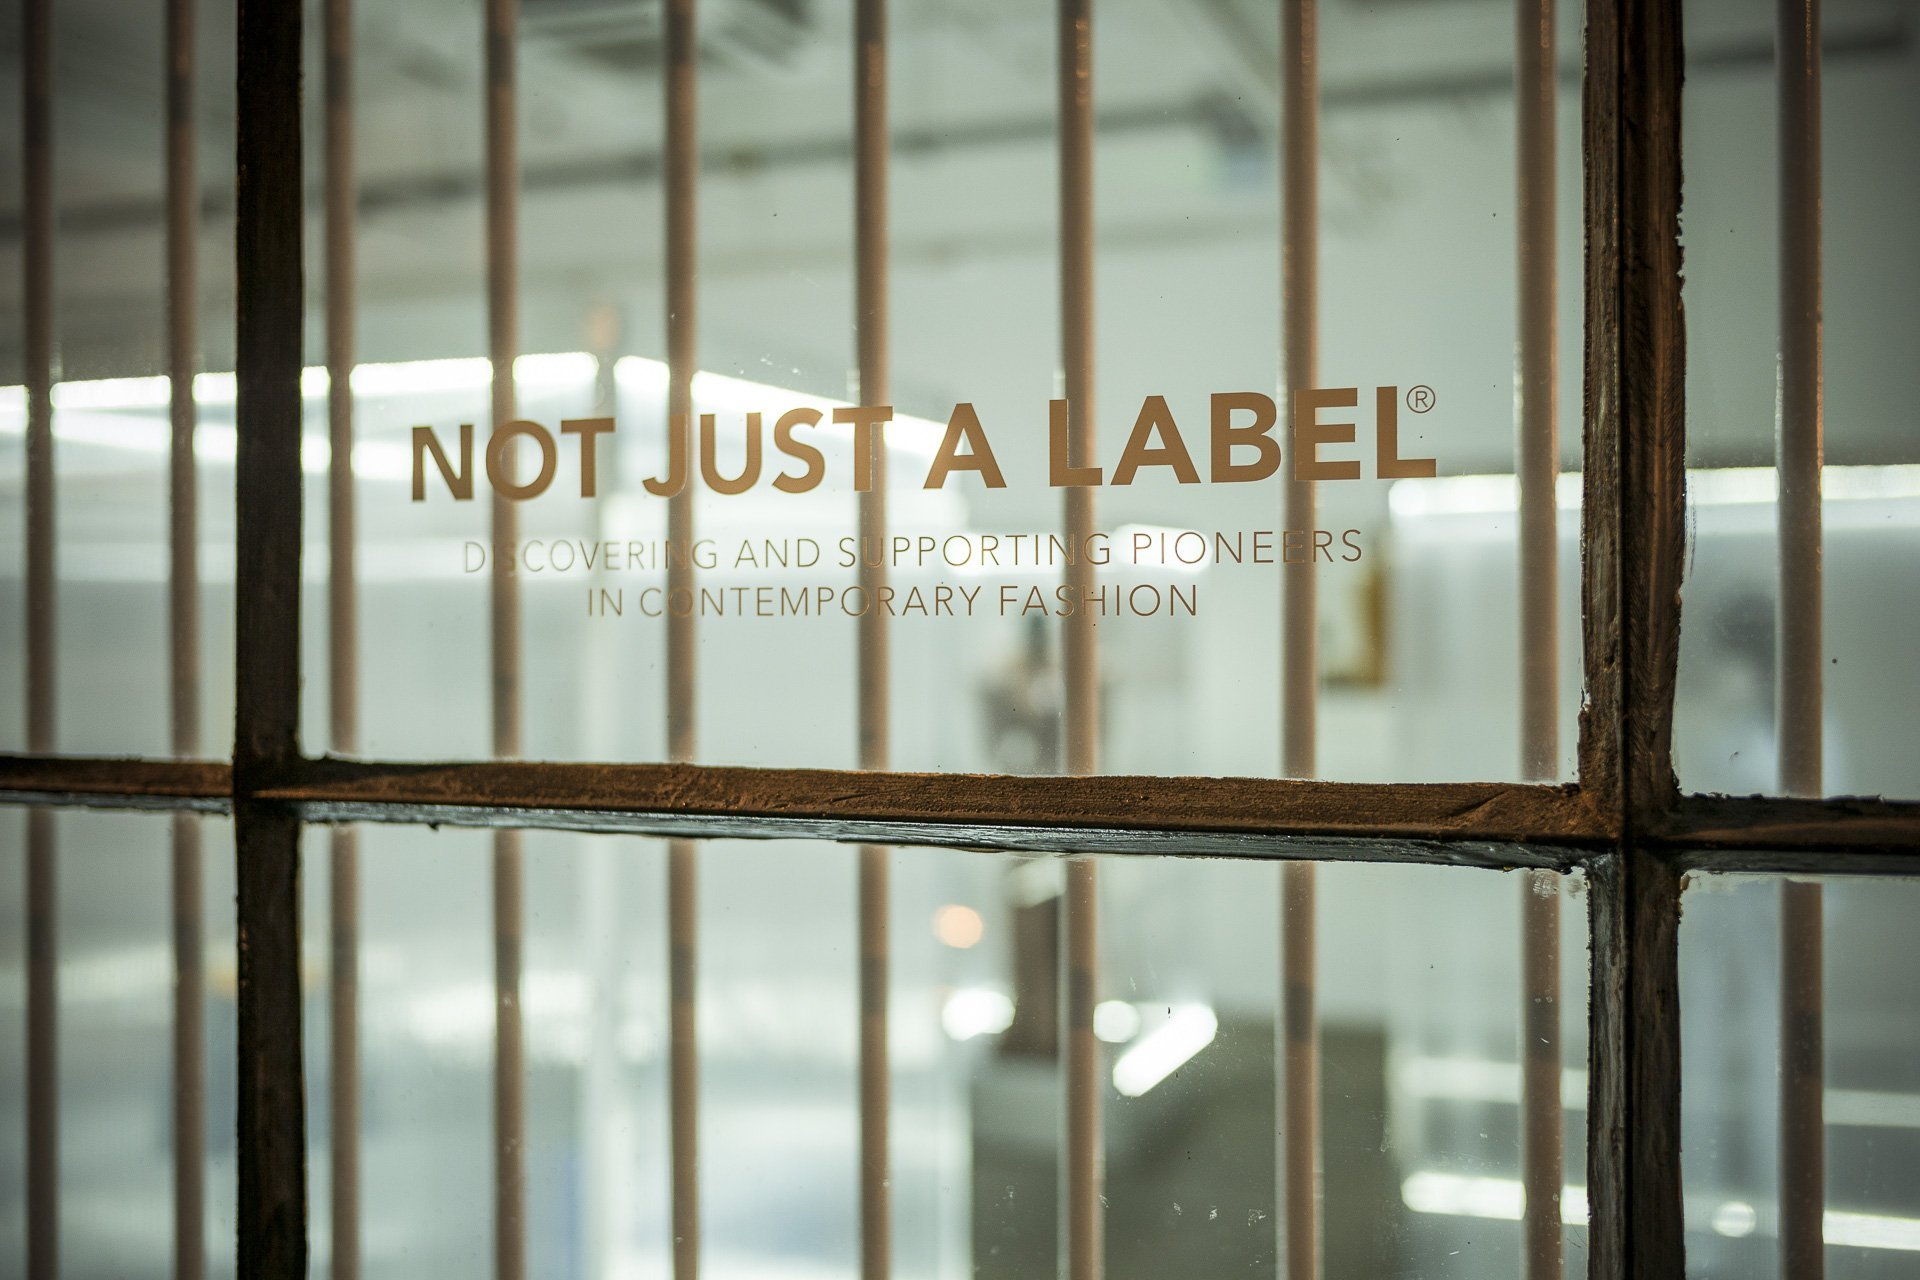 A window with vinyl lettering saying 'not just a label' and bars over the top of it